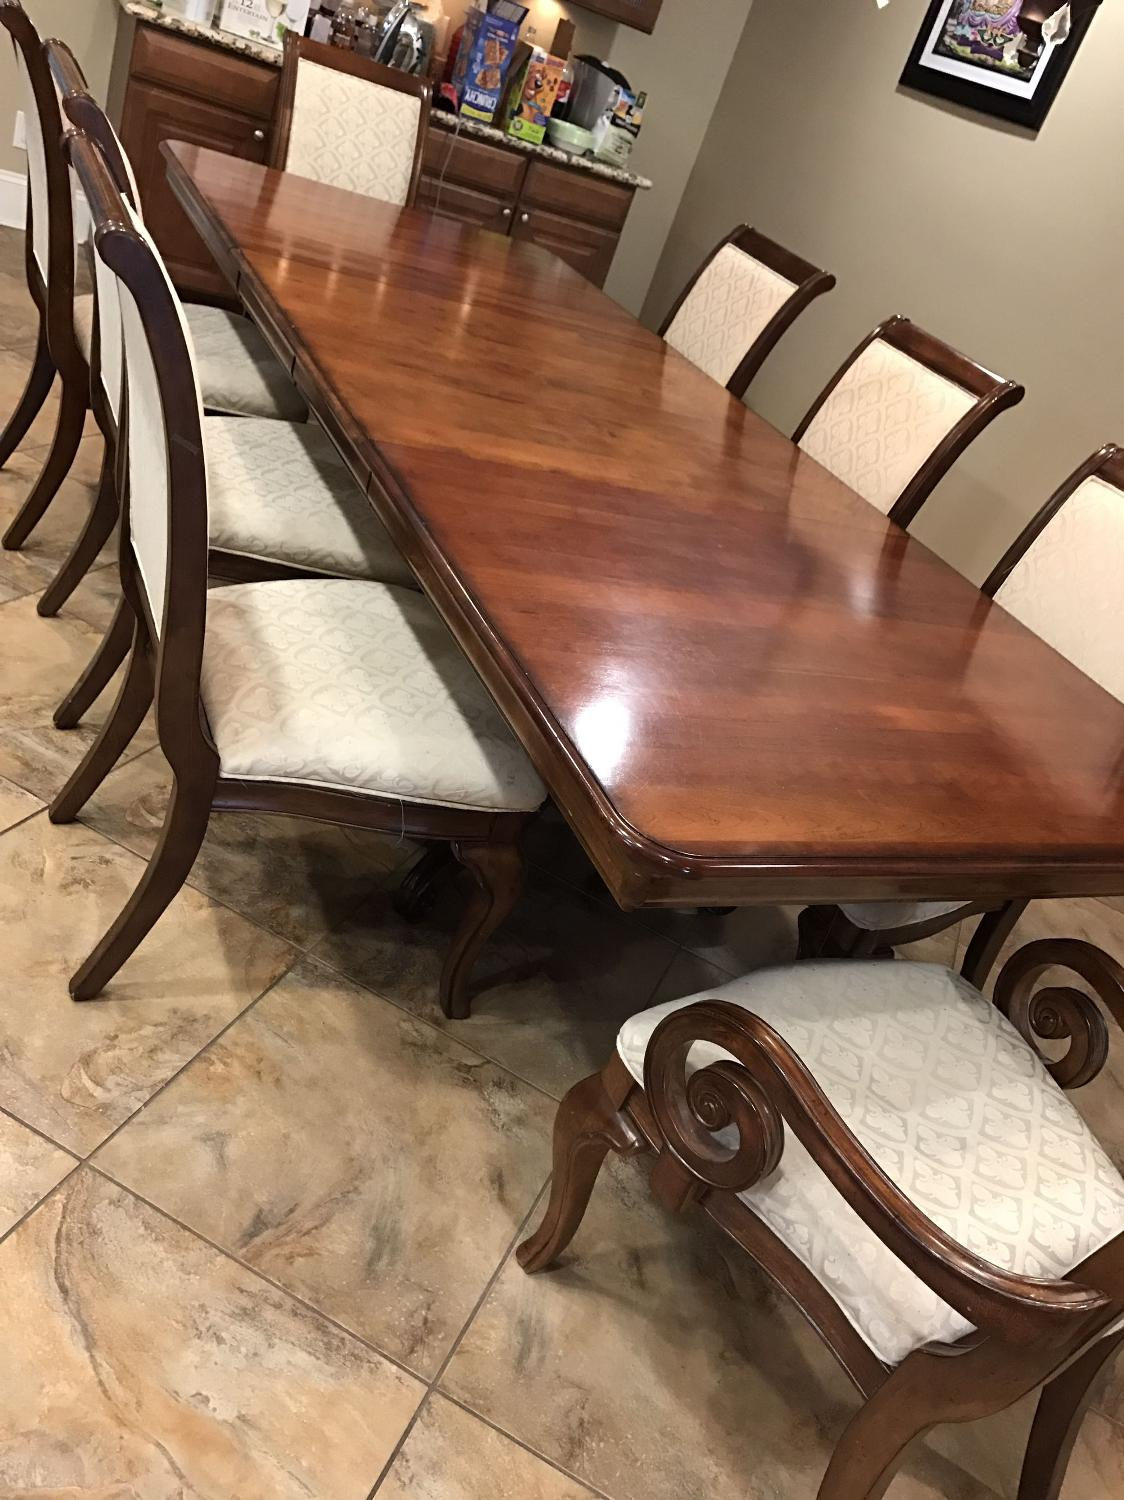 Find More Hurwitz Mintz Dining Room Table For Sale At Up To 90 Off Metairie La